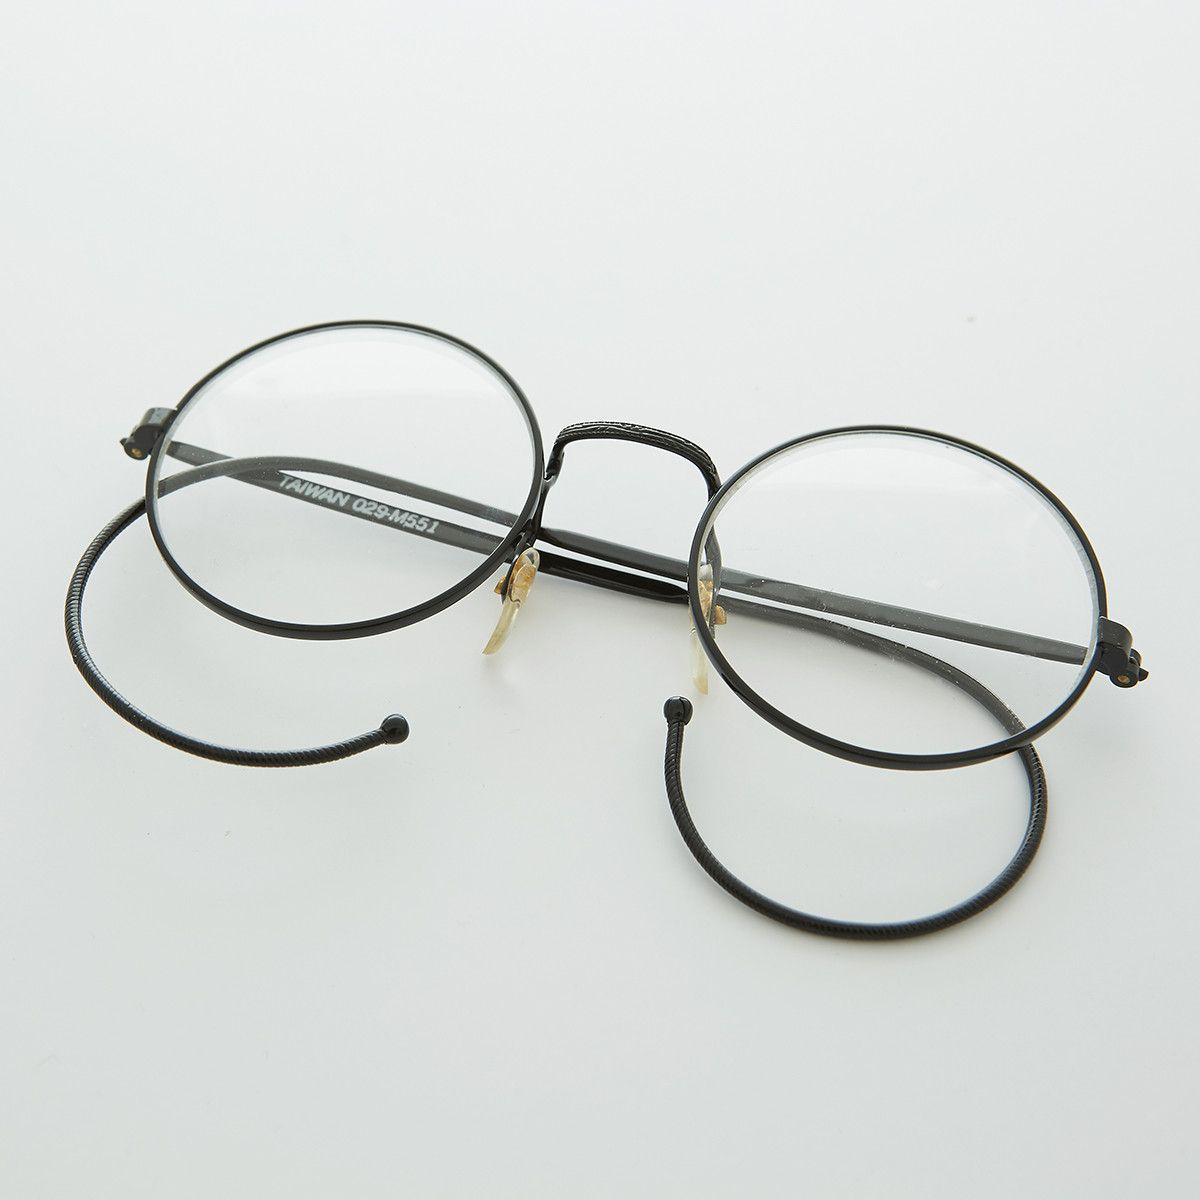 05e93214388 Round John Lennon Victorian Spectacle Vintage Eyeglasses with Cable ...